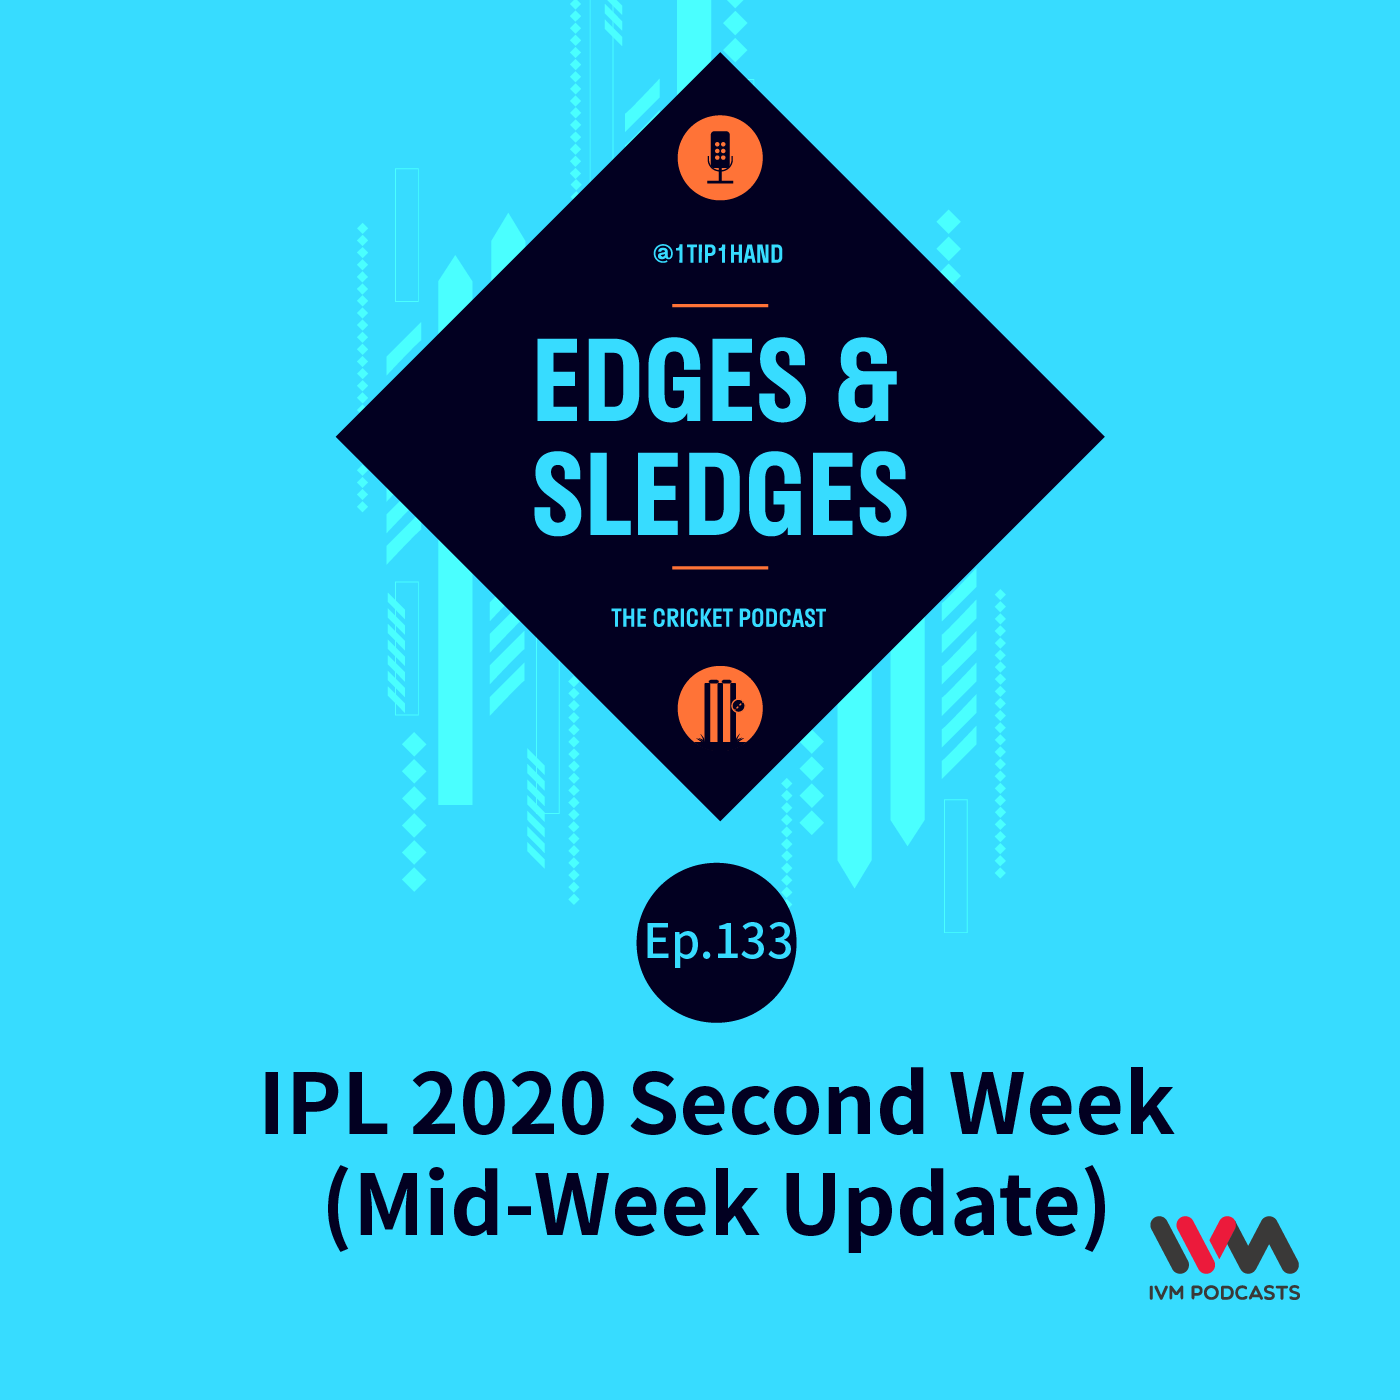 Ep. 133: IPL 2020 Second Week (Mid-Week Update)